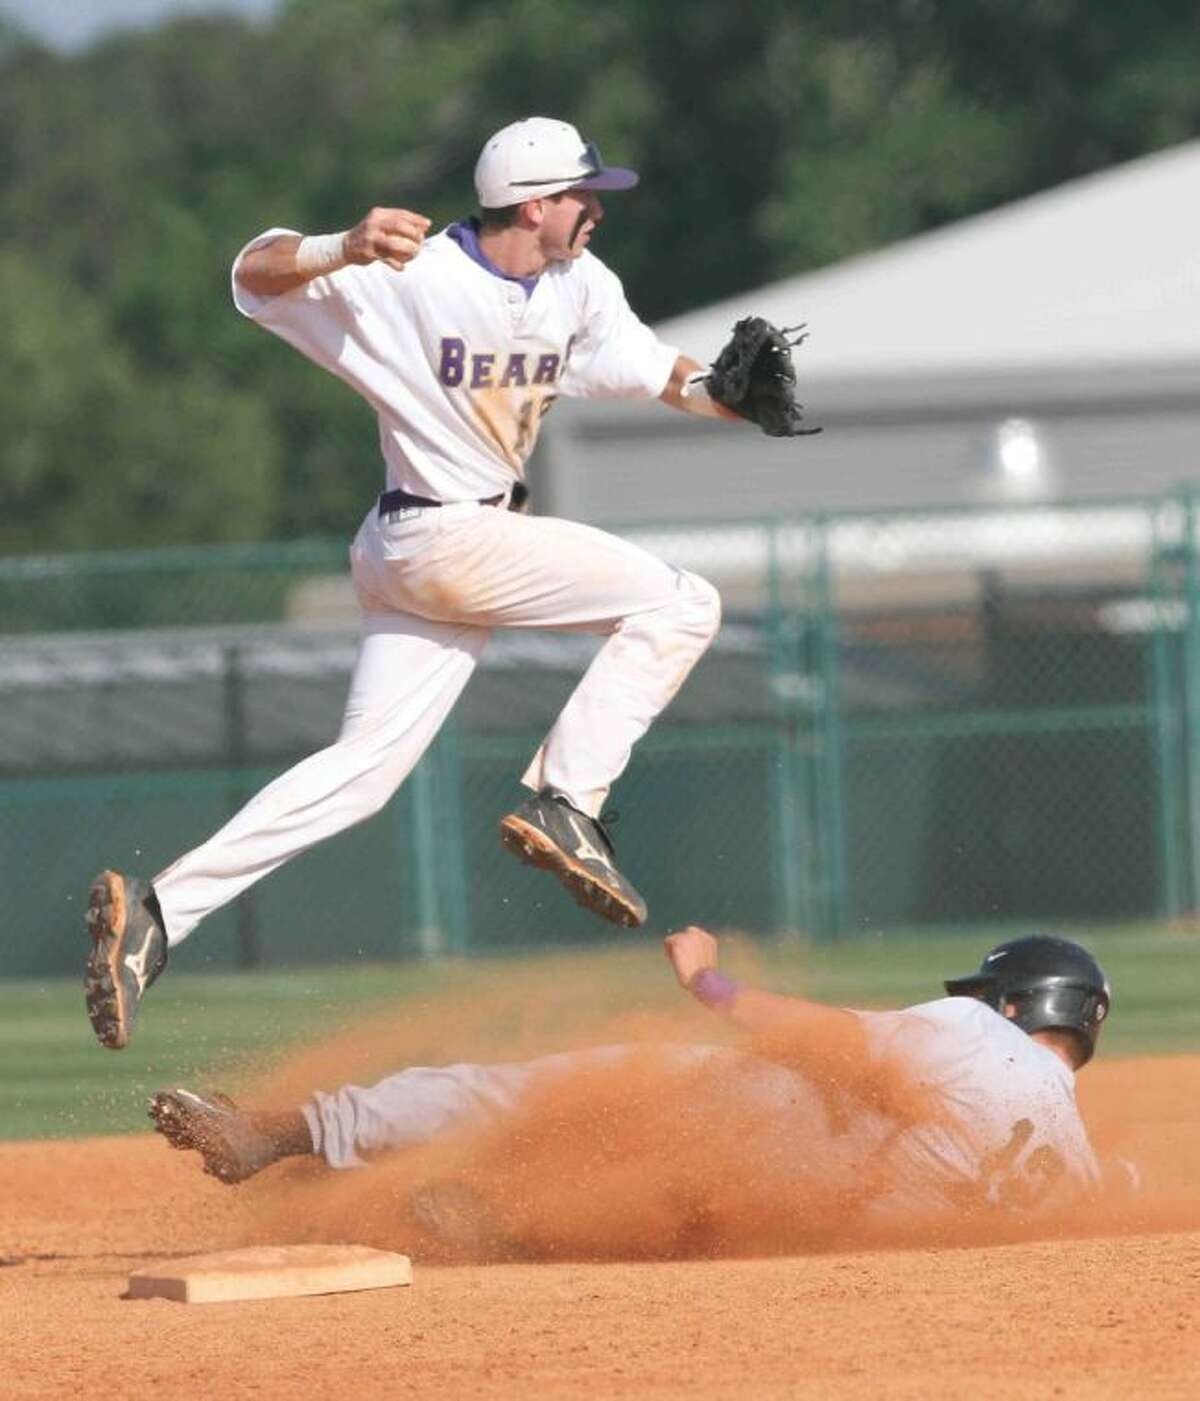 Montgomery shortstop Garrett Hrozek leaps up to turn a double play during a high school area baseball playoff game at Montgomery High School on Friday. Kingwood Park defeated Montgomery 2-1 in Game 1 before the Bears took Game 2 9-1. Go to HCNPics.com to view and purchase this photo, and others like it.